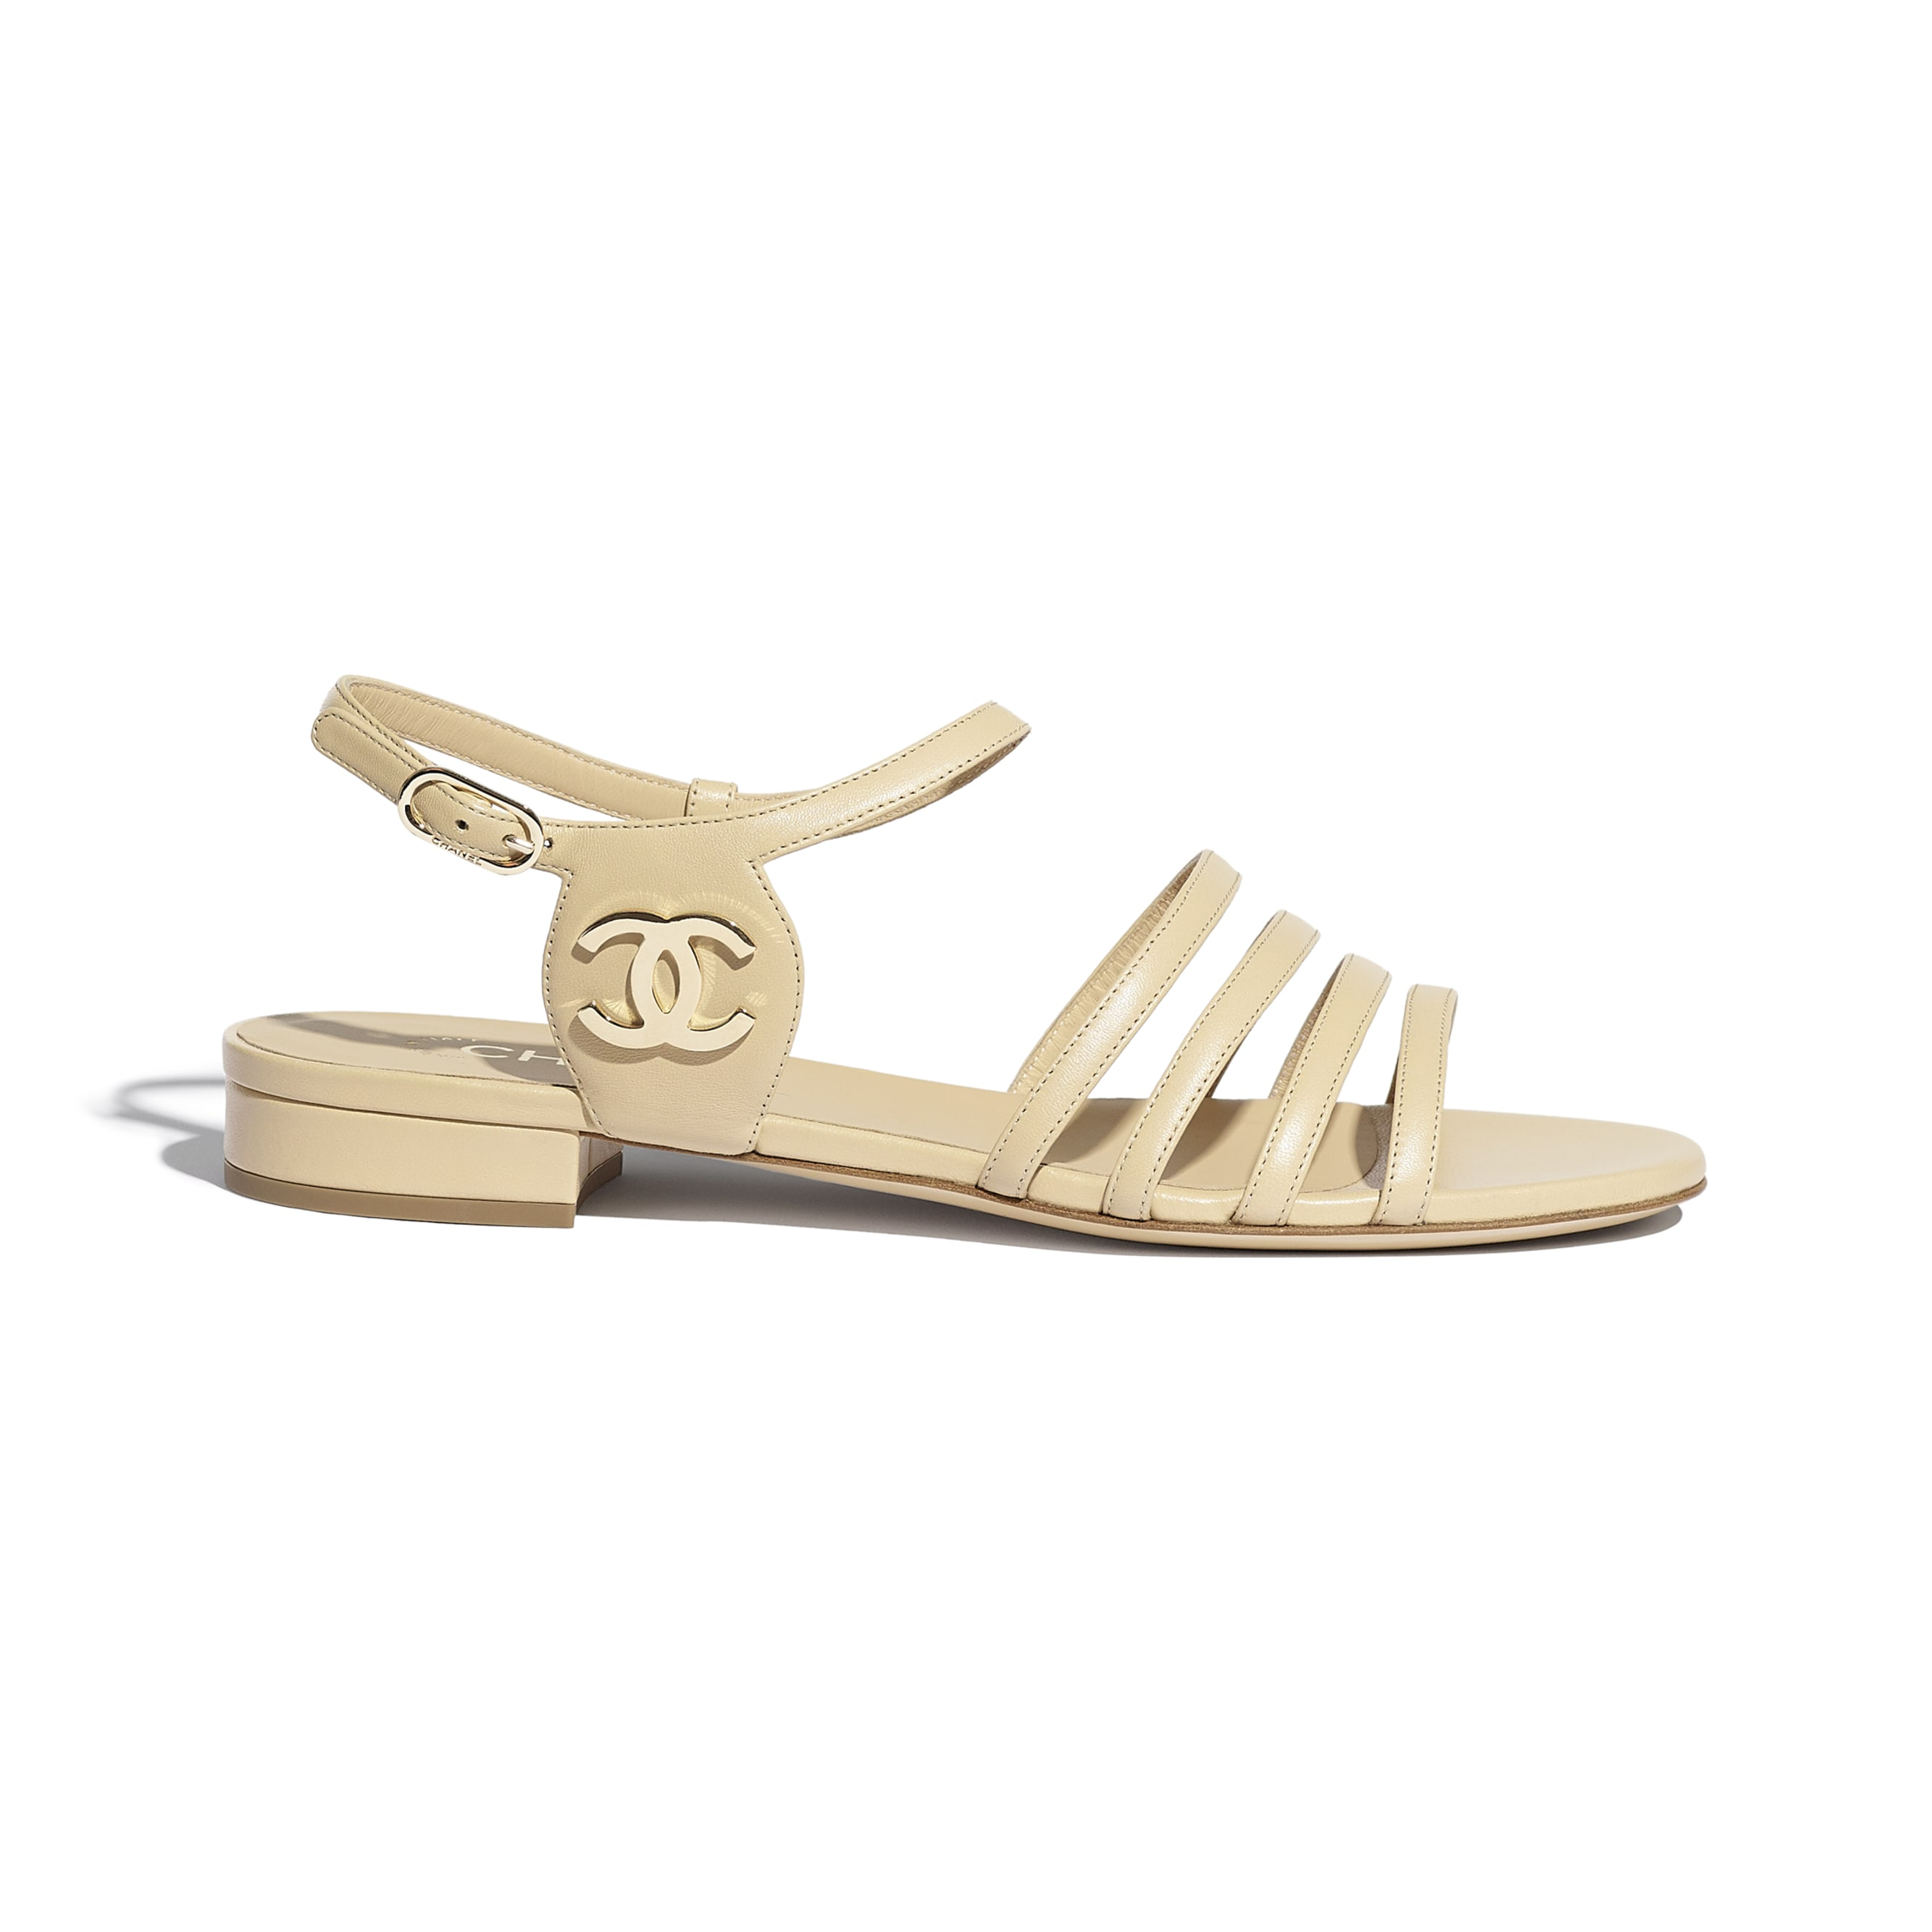 Sandals - Beige - Lambskin - CHANEL - Default view - see standard sized version